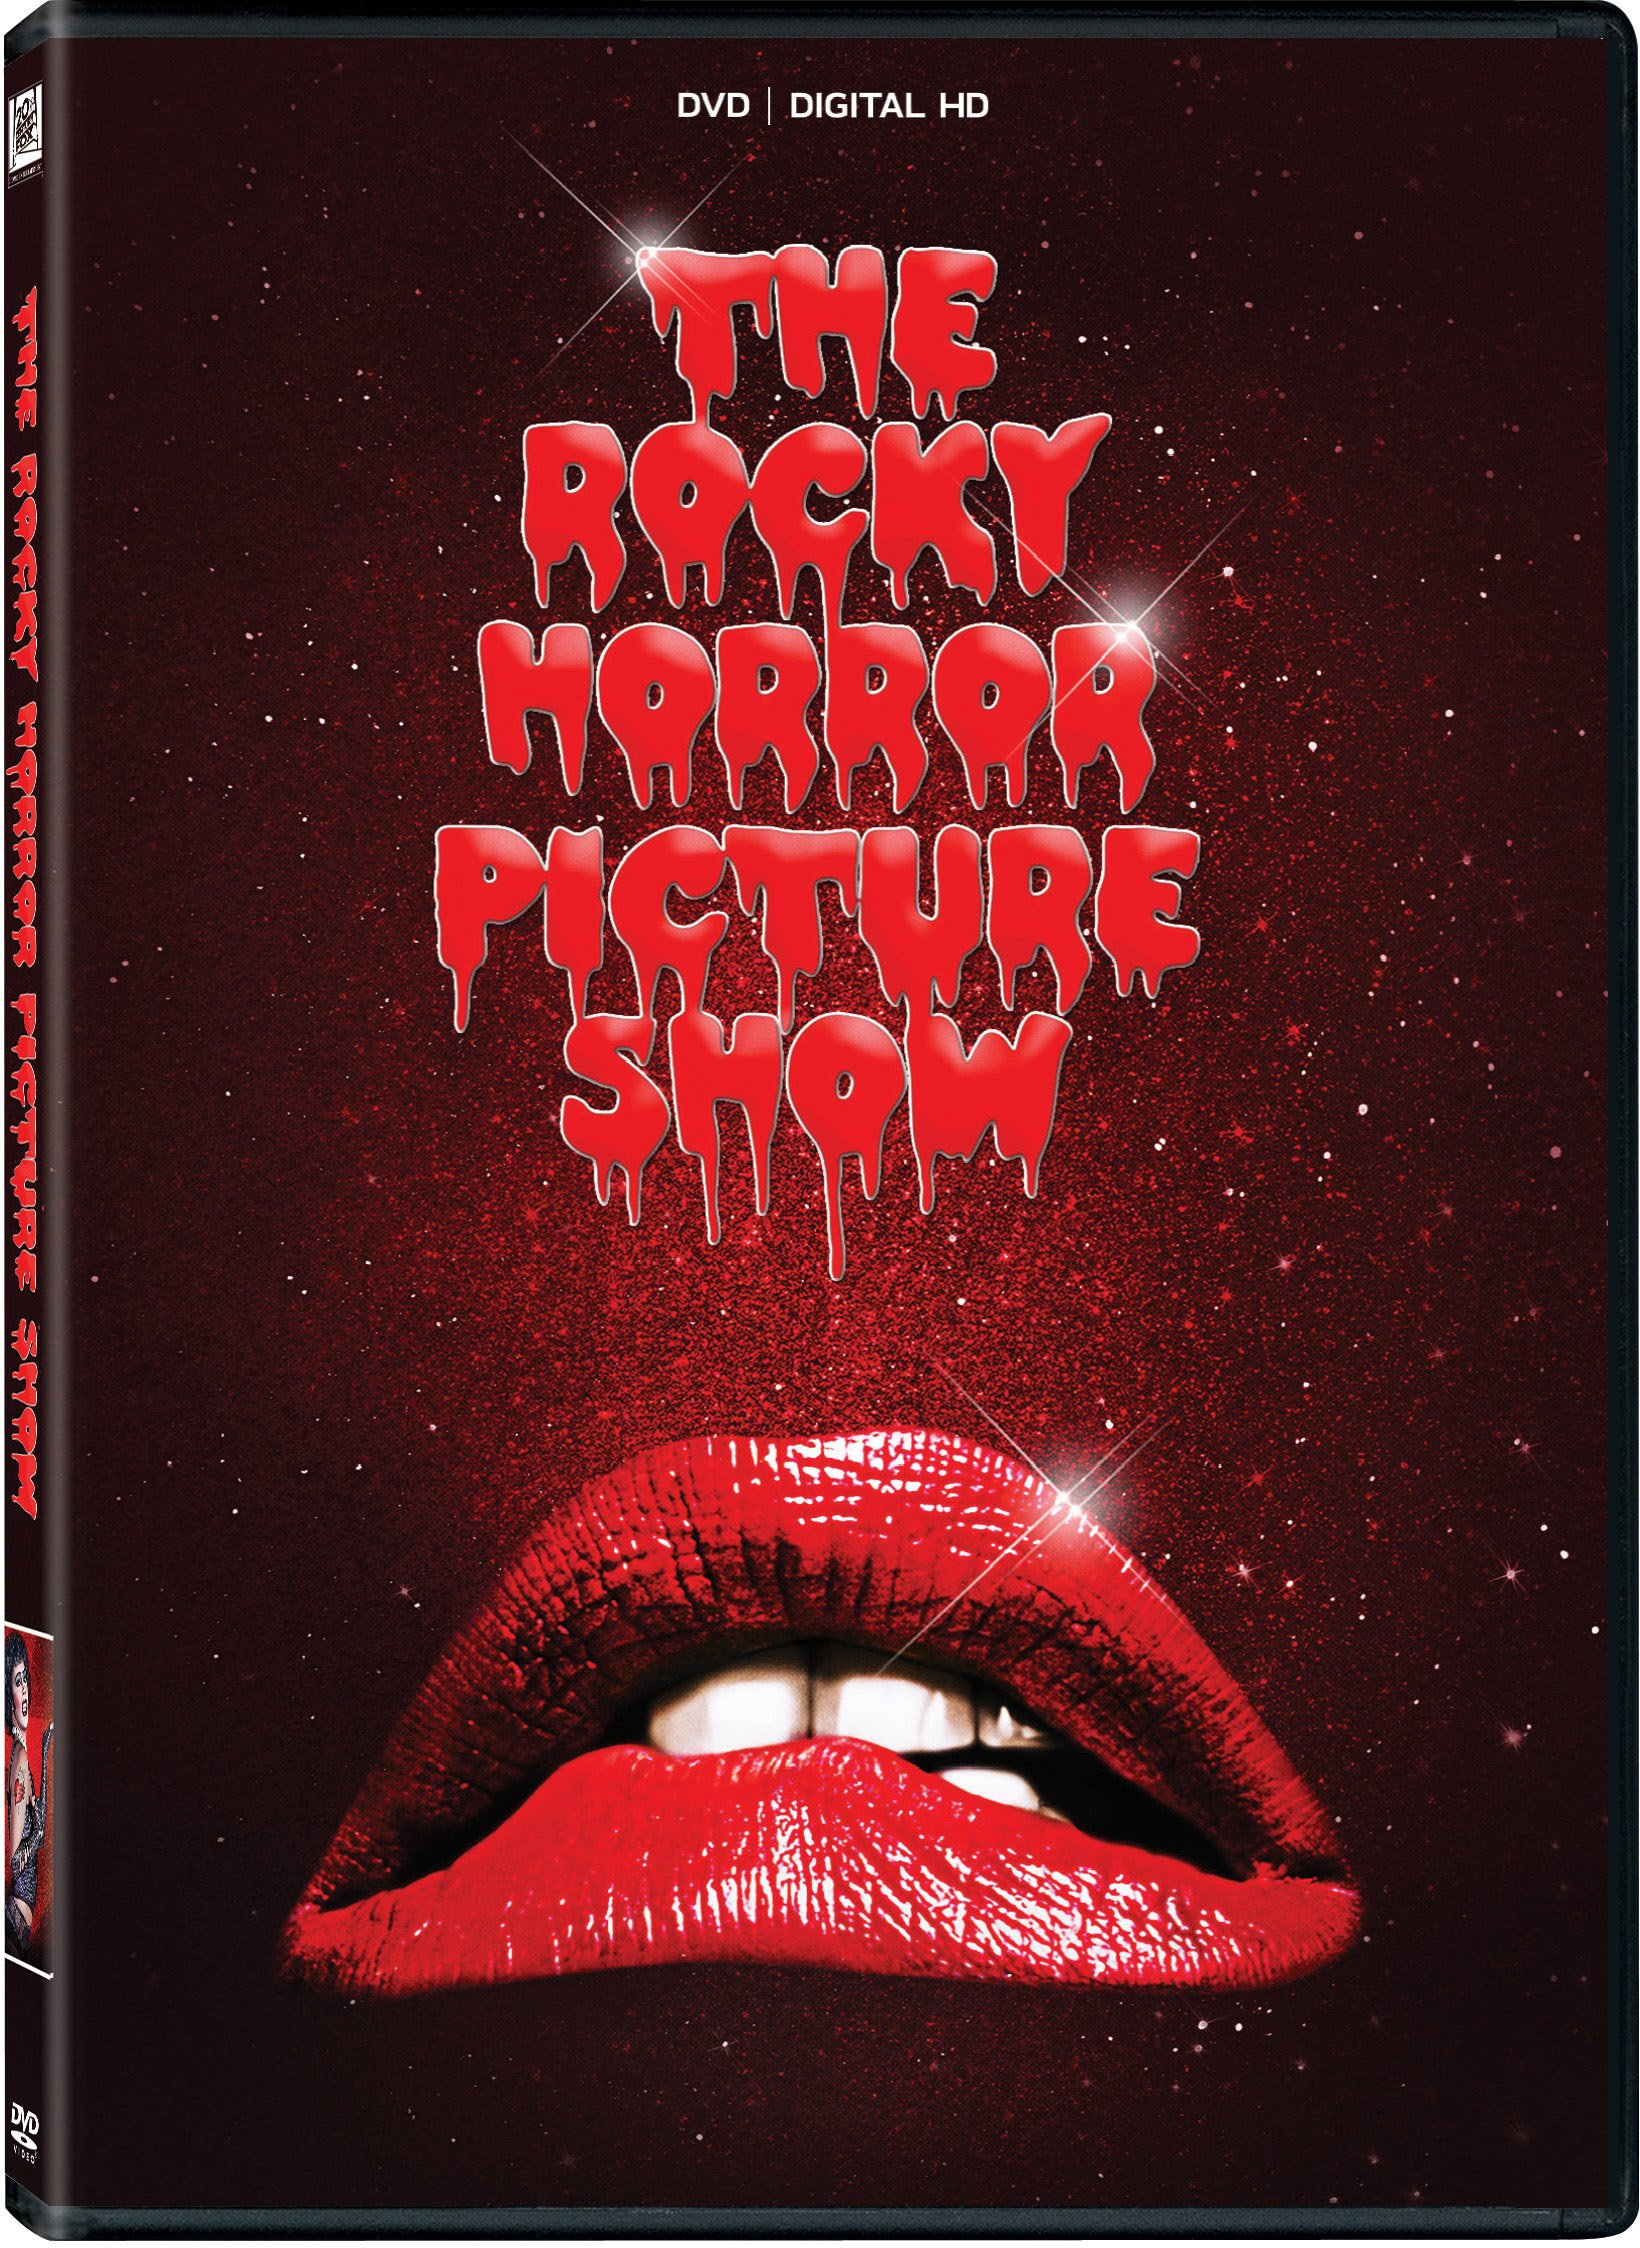 DVD : The Rocky Horror Picture Show (40th Anniversary) (Anniversary Edition, Widescreen, , Mono Sound, Digitally Mastered in HD)